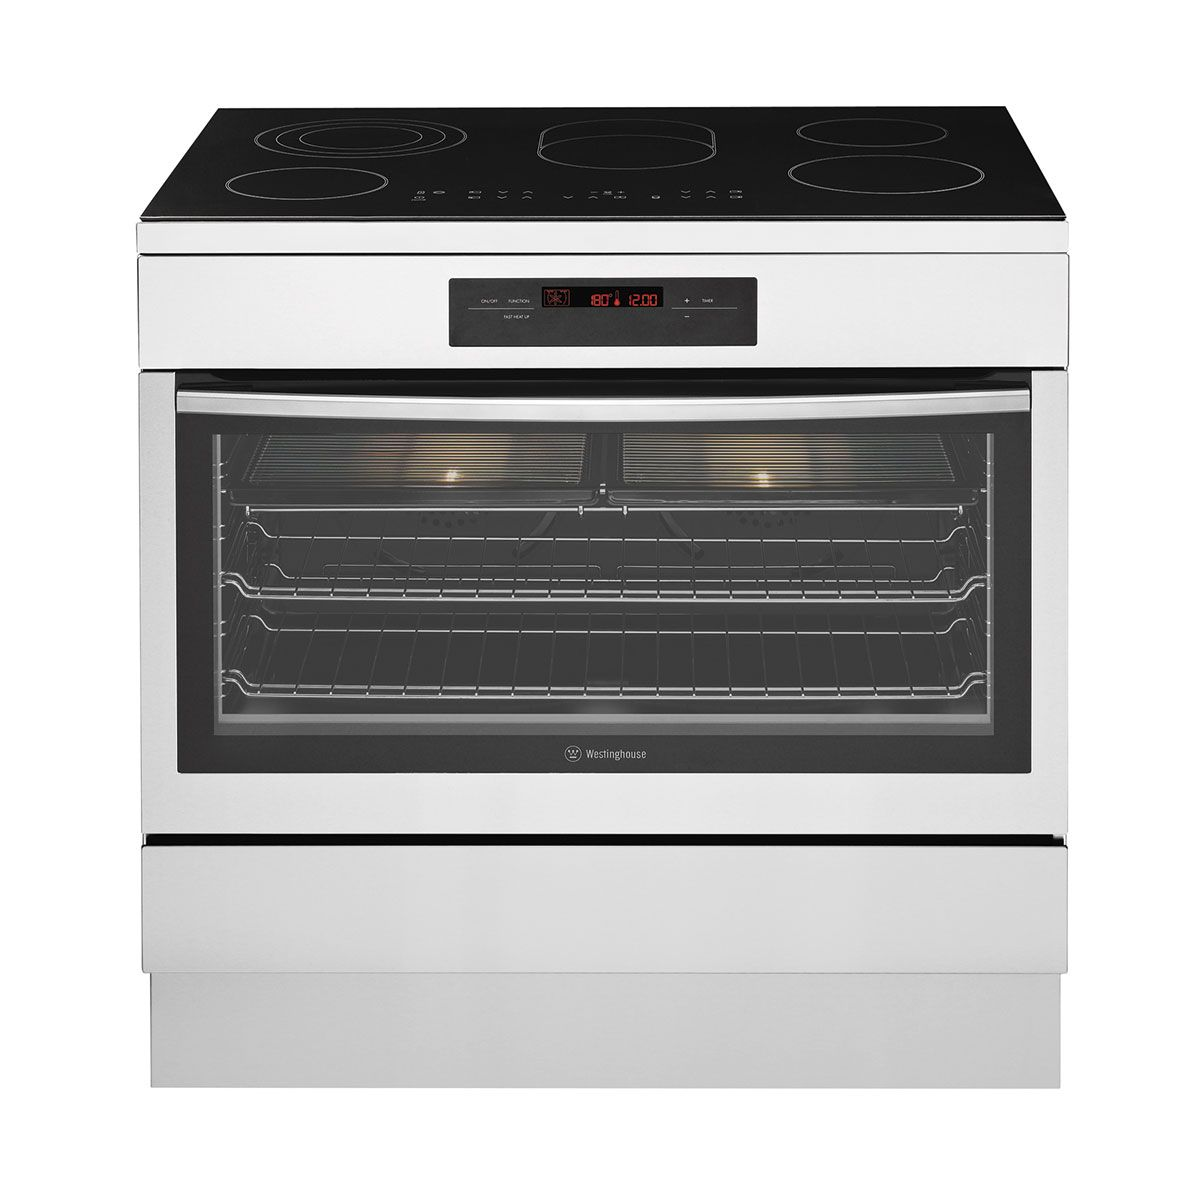 90cm Freestanding Electric Oven Stove